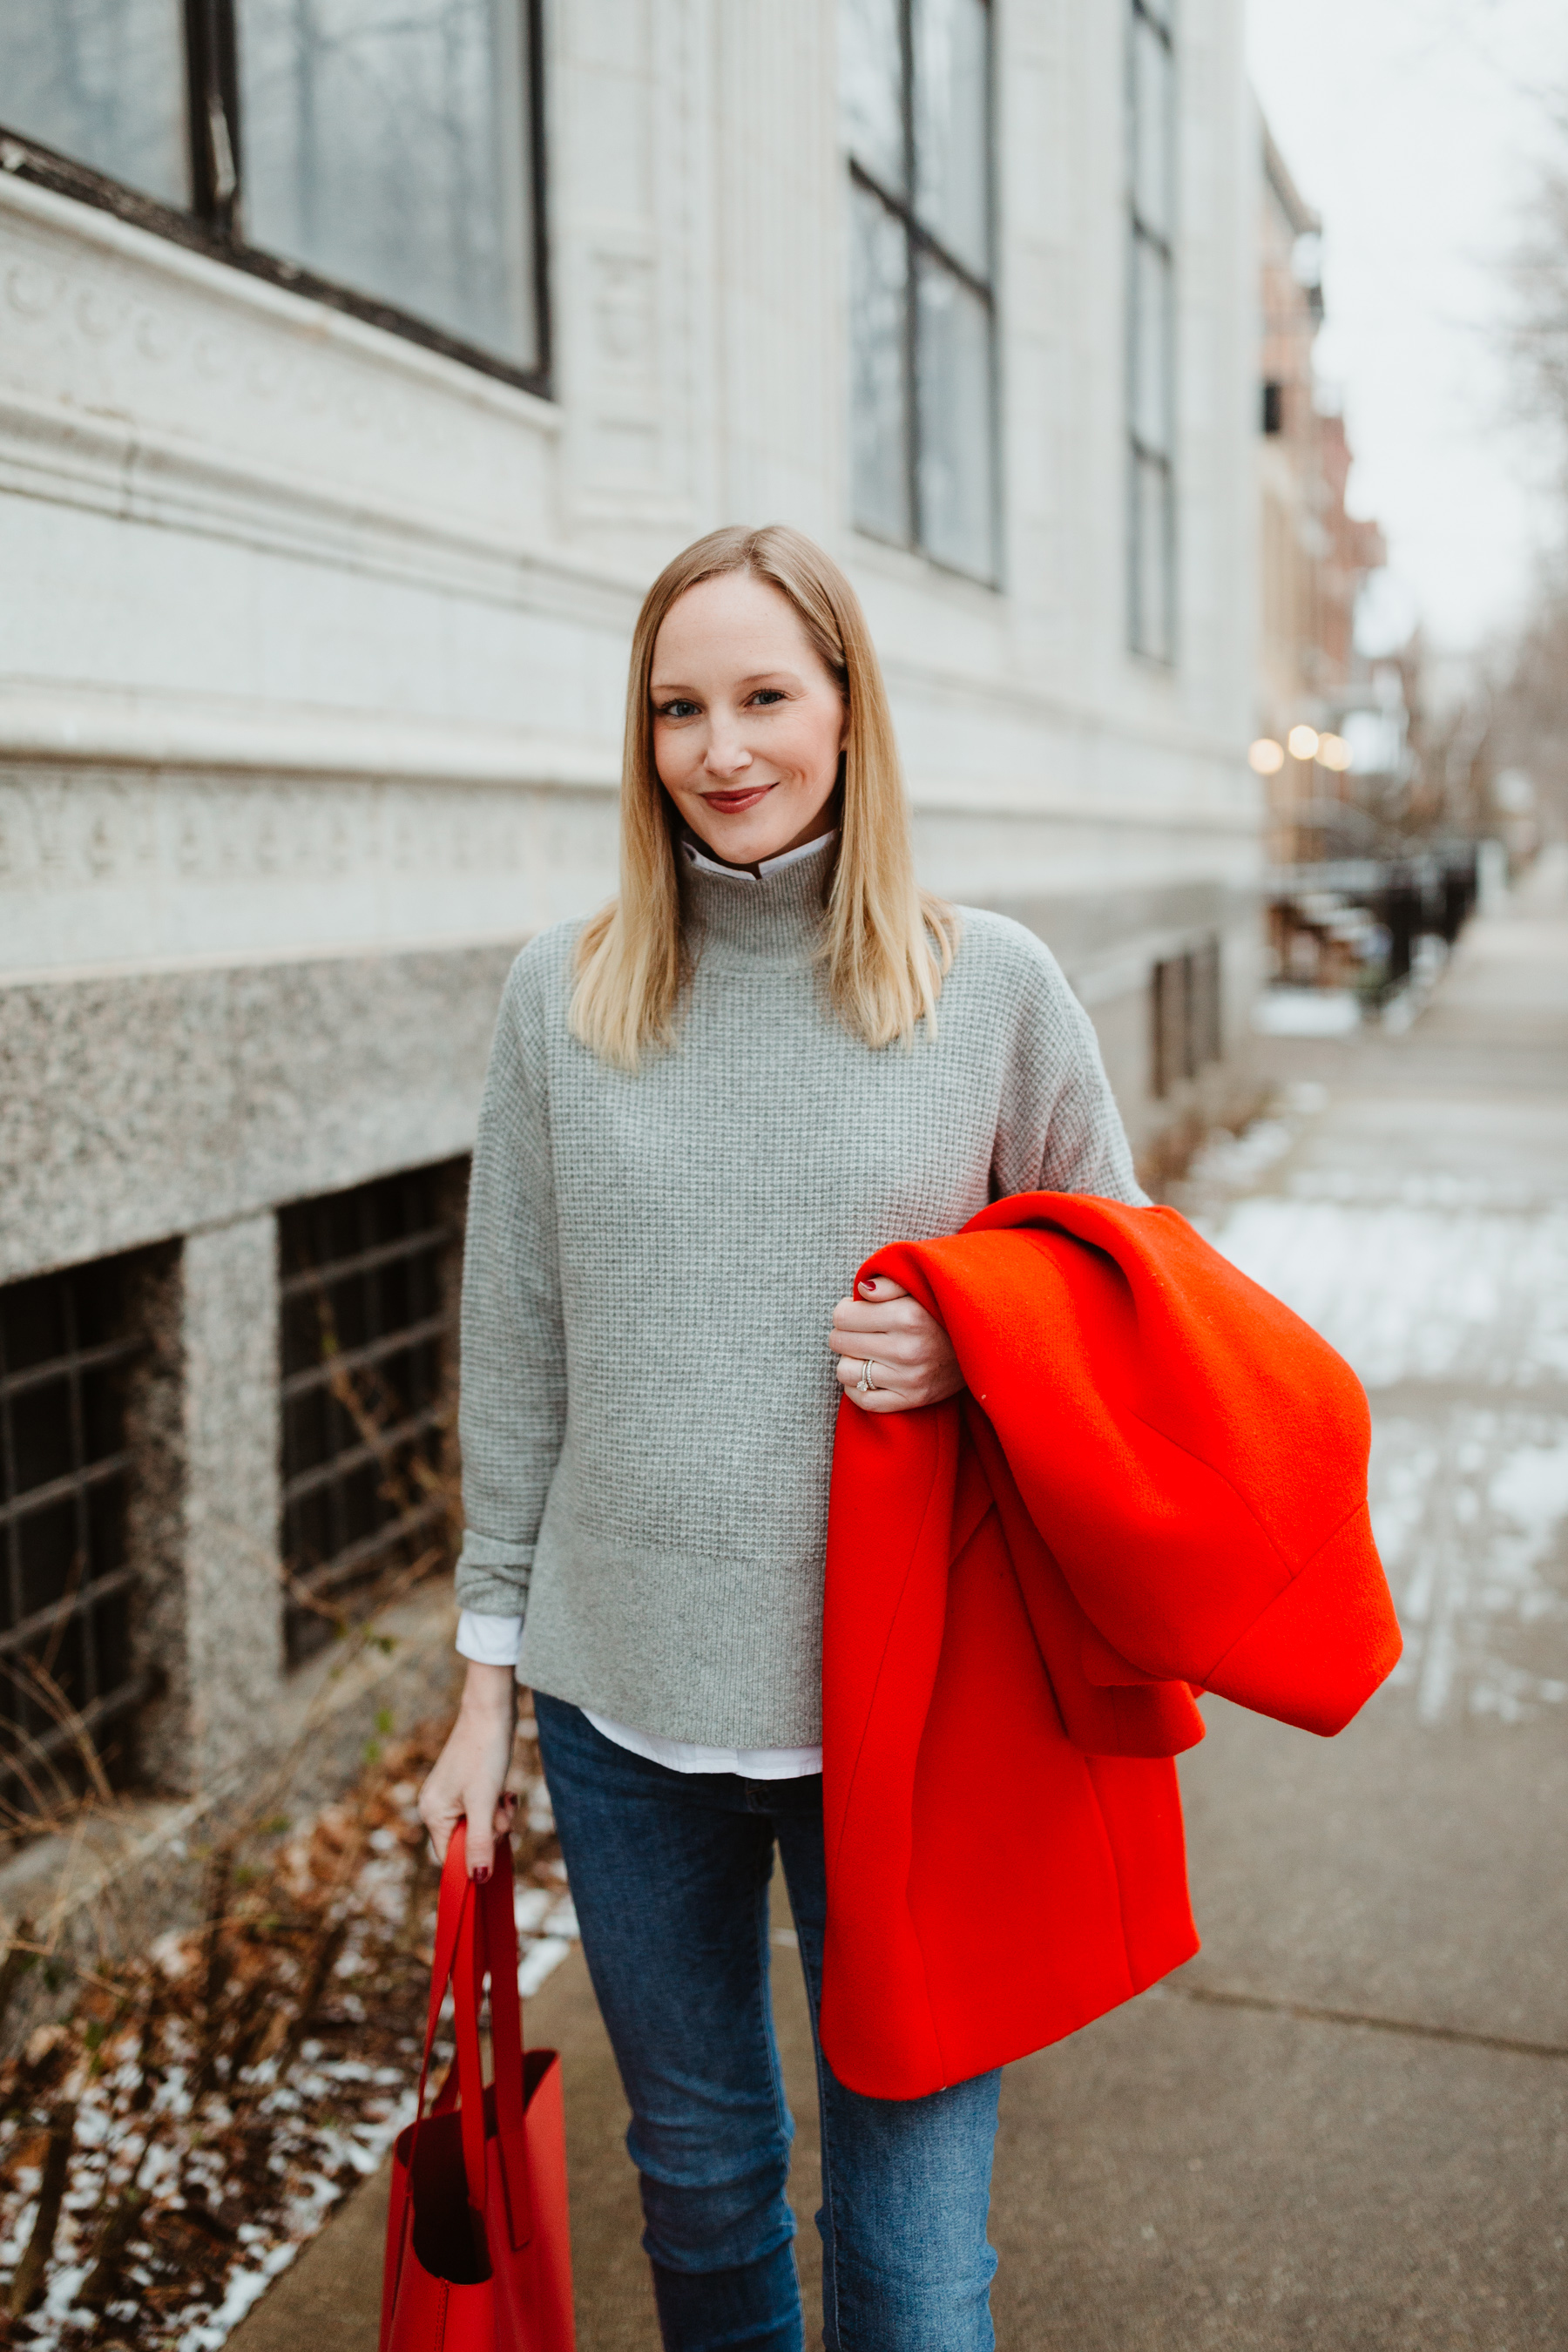 My Favorite Everlane Products